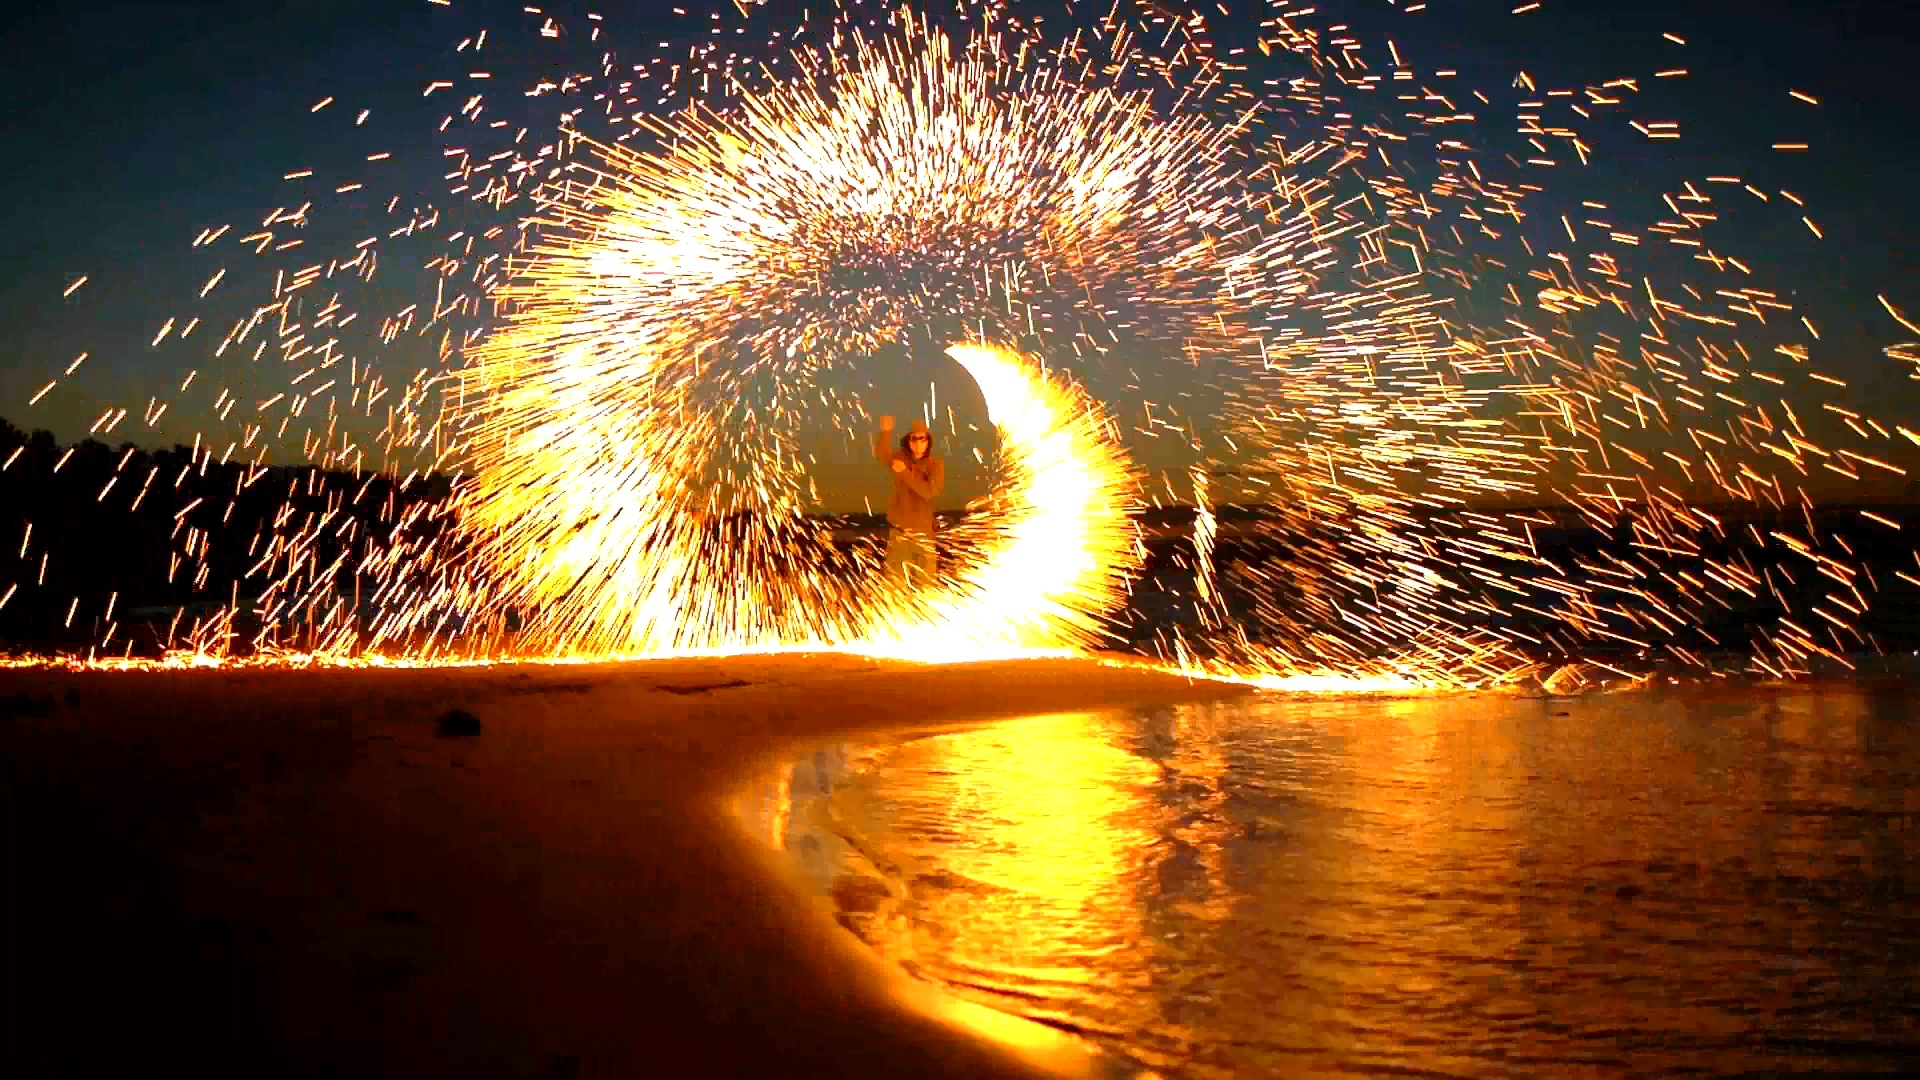 Steel Wool Fireworks - Tips & Tricks